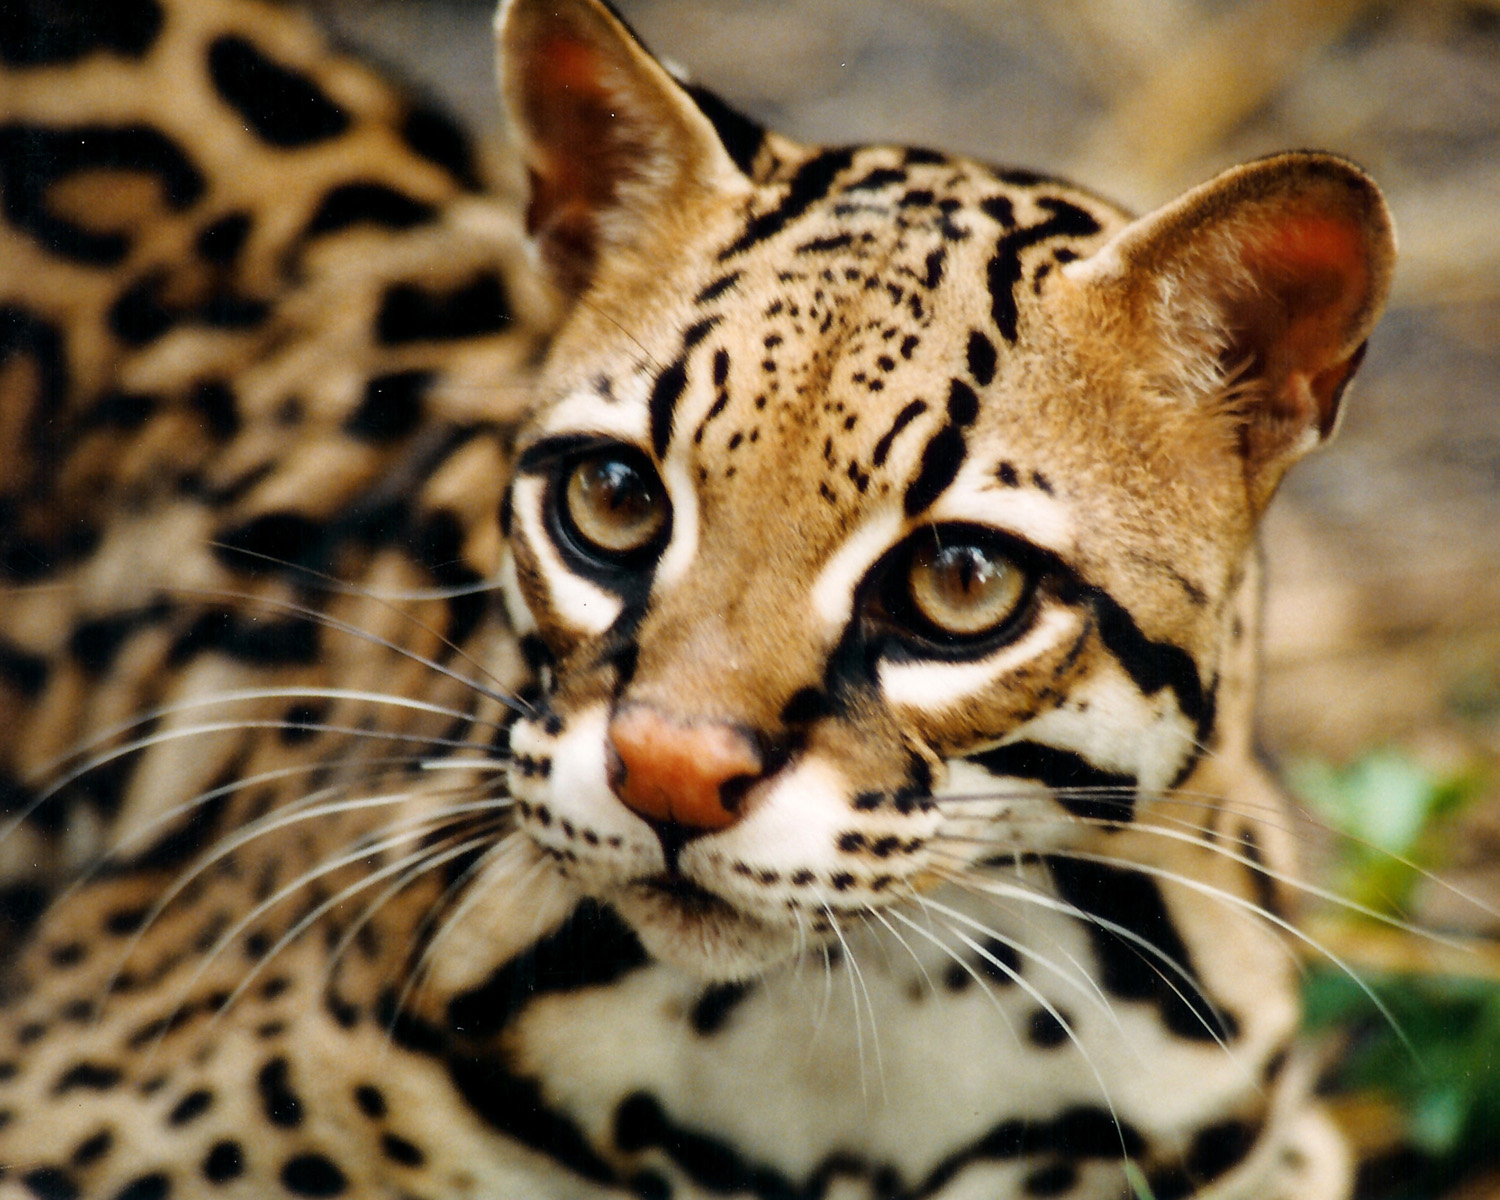 endangered ocelot killed by capitalist imperialist car